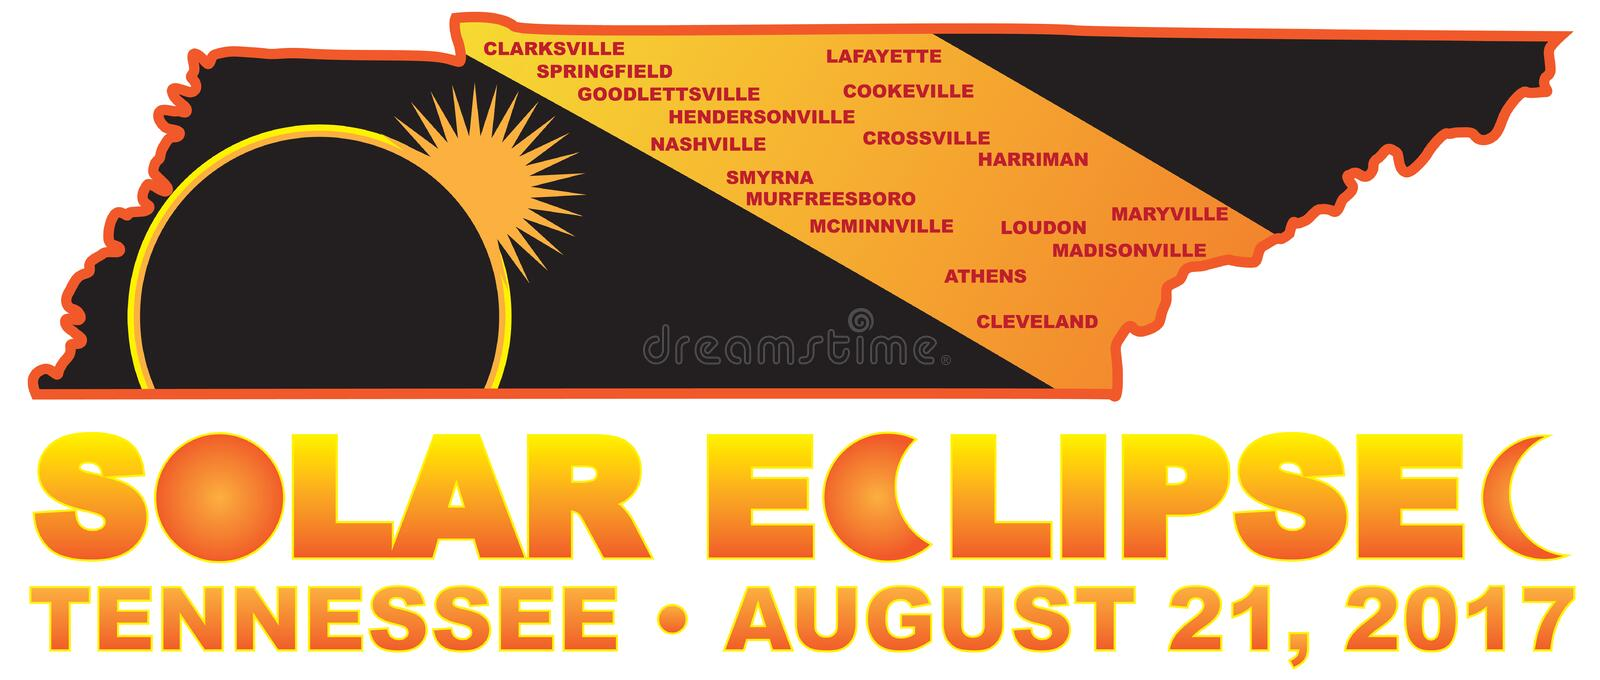 2017 Solar Eclipse Across Tennessee Cities Map vector Illustration vector illustration